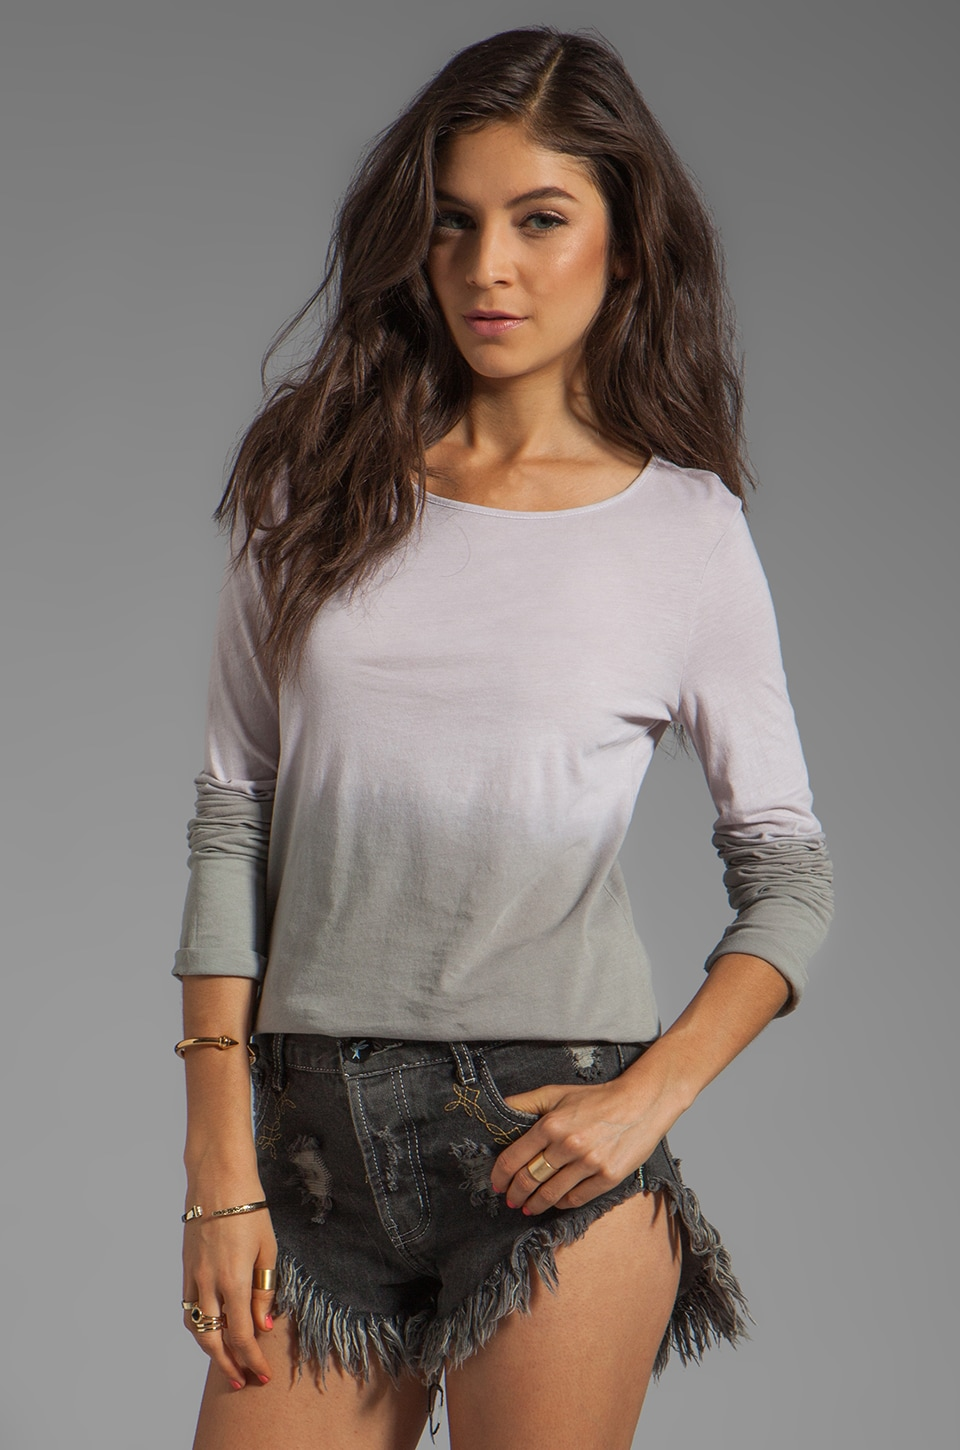 fLuXuS Dip Dye Long Sleeve Tee in Cement Dip